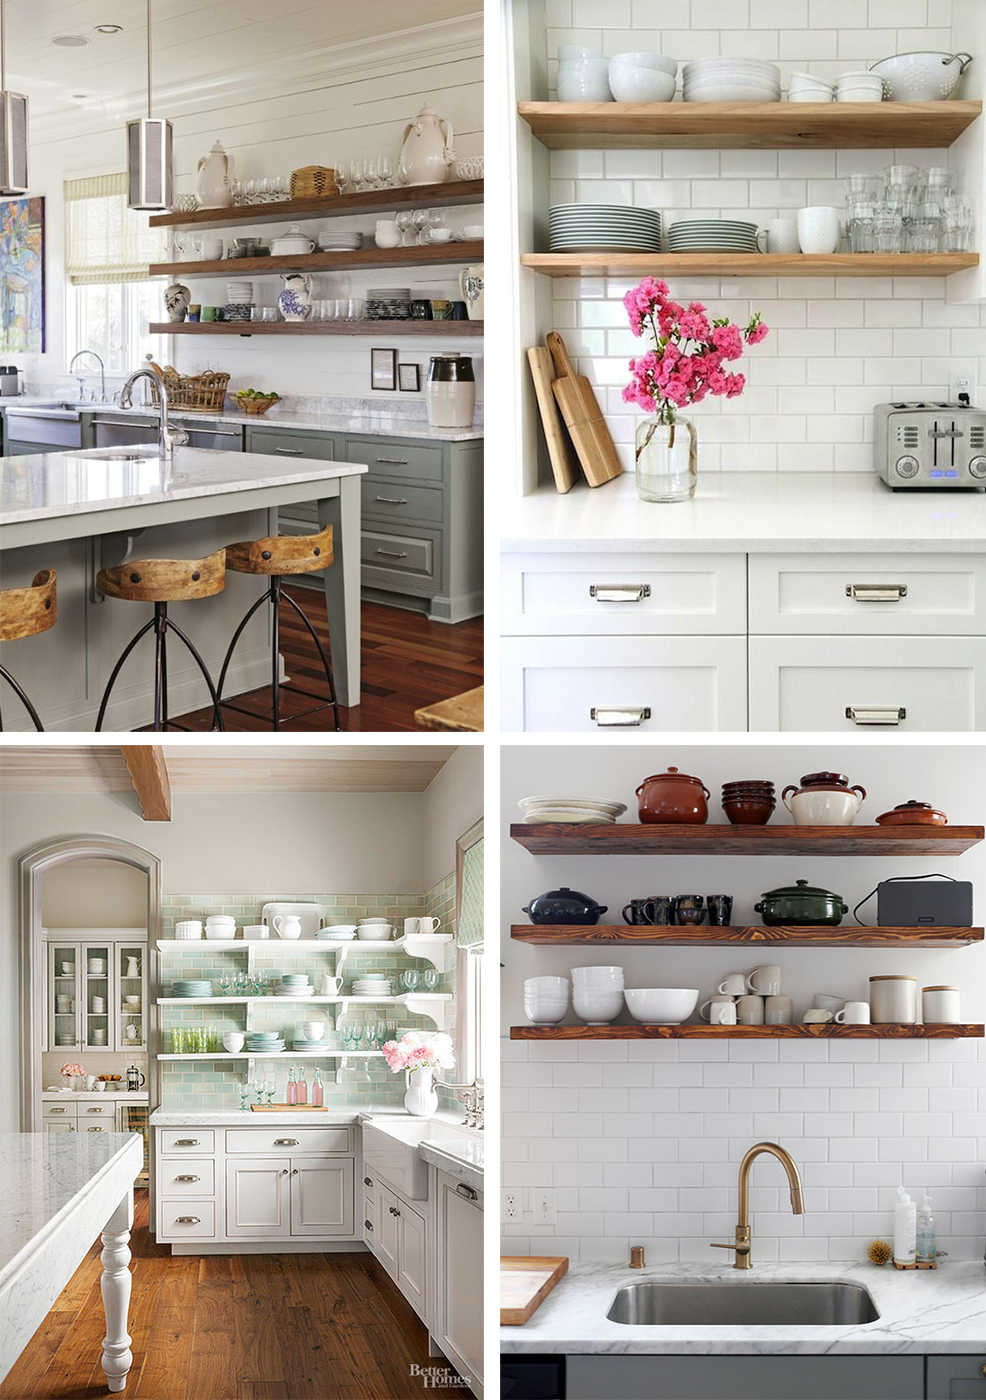 Kitchen Tweaking - Open Kitchen Shelving - French For Pineapple Blog